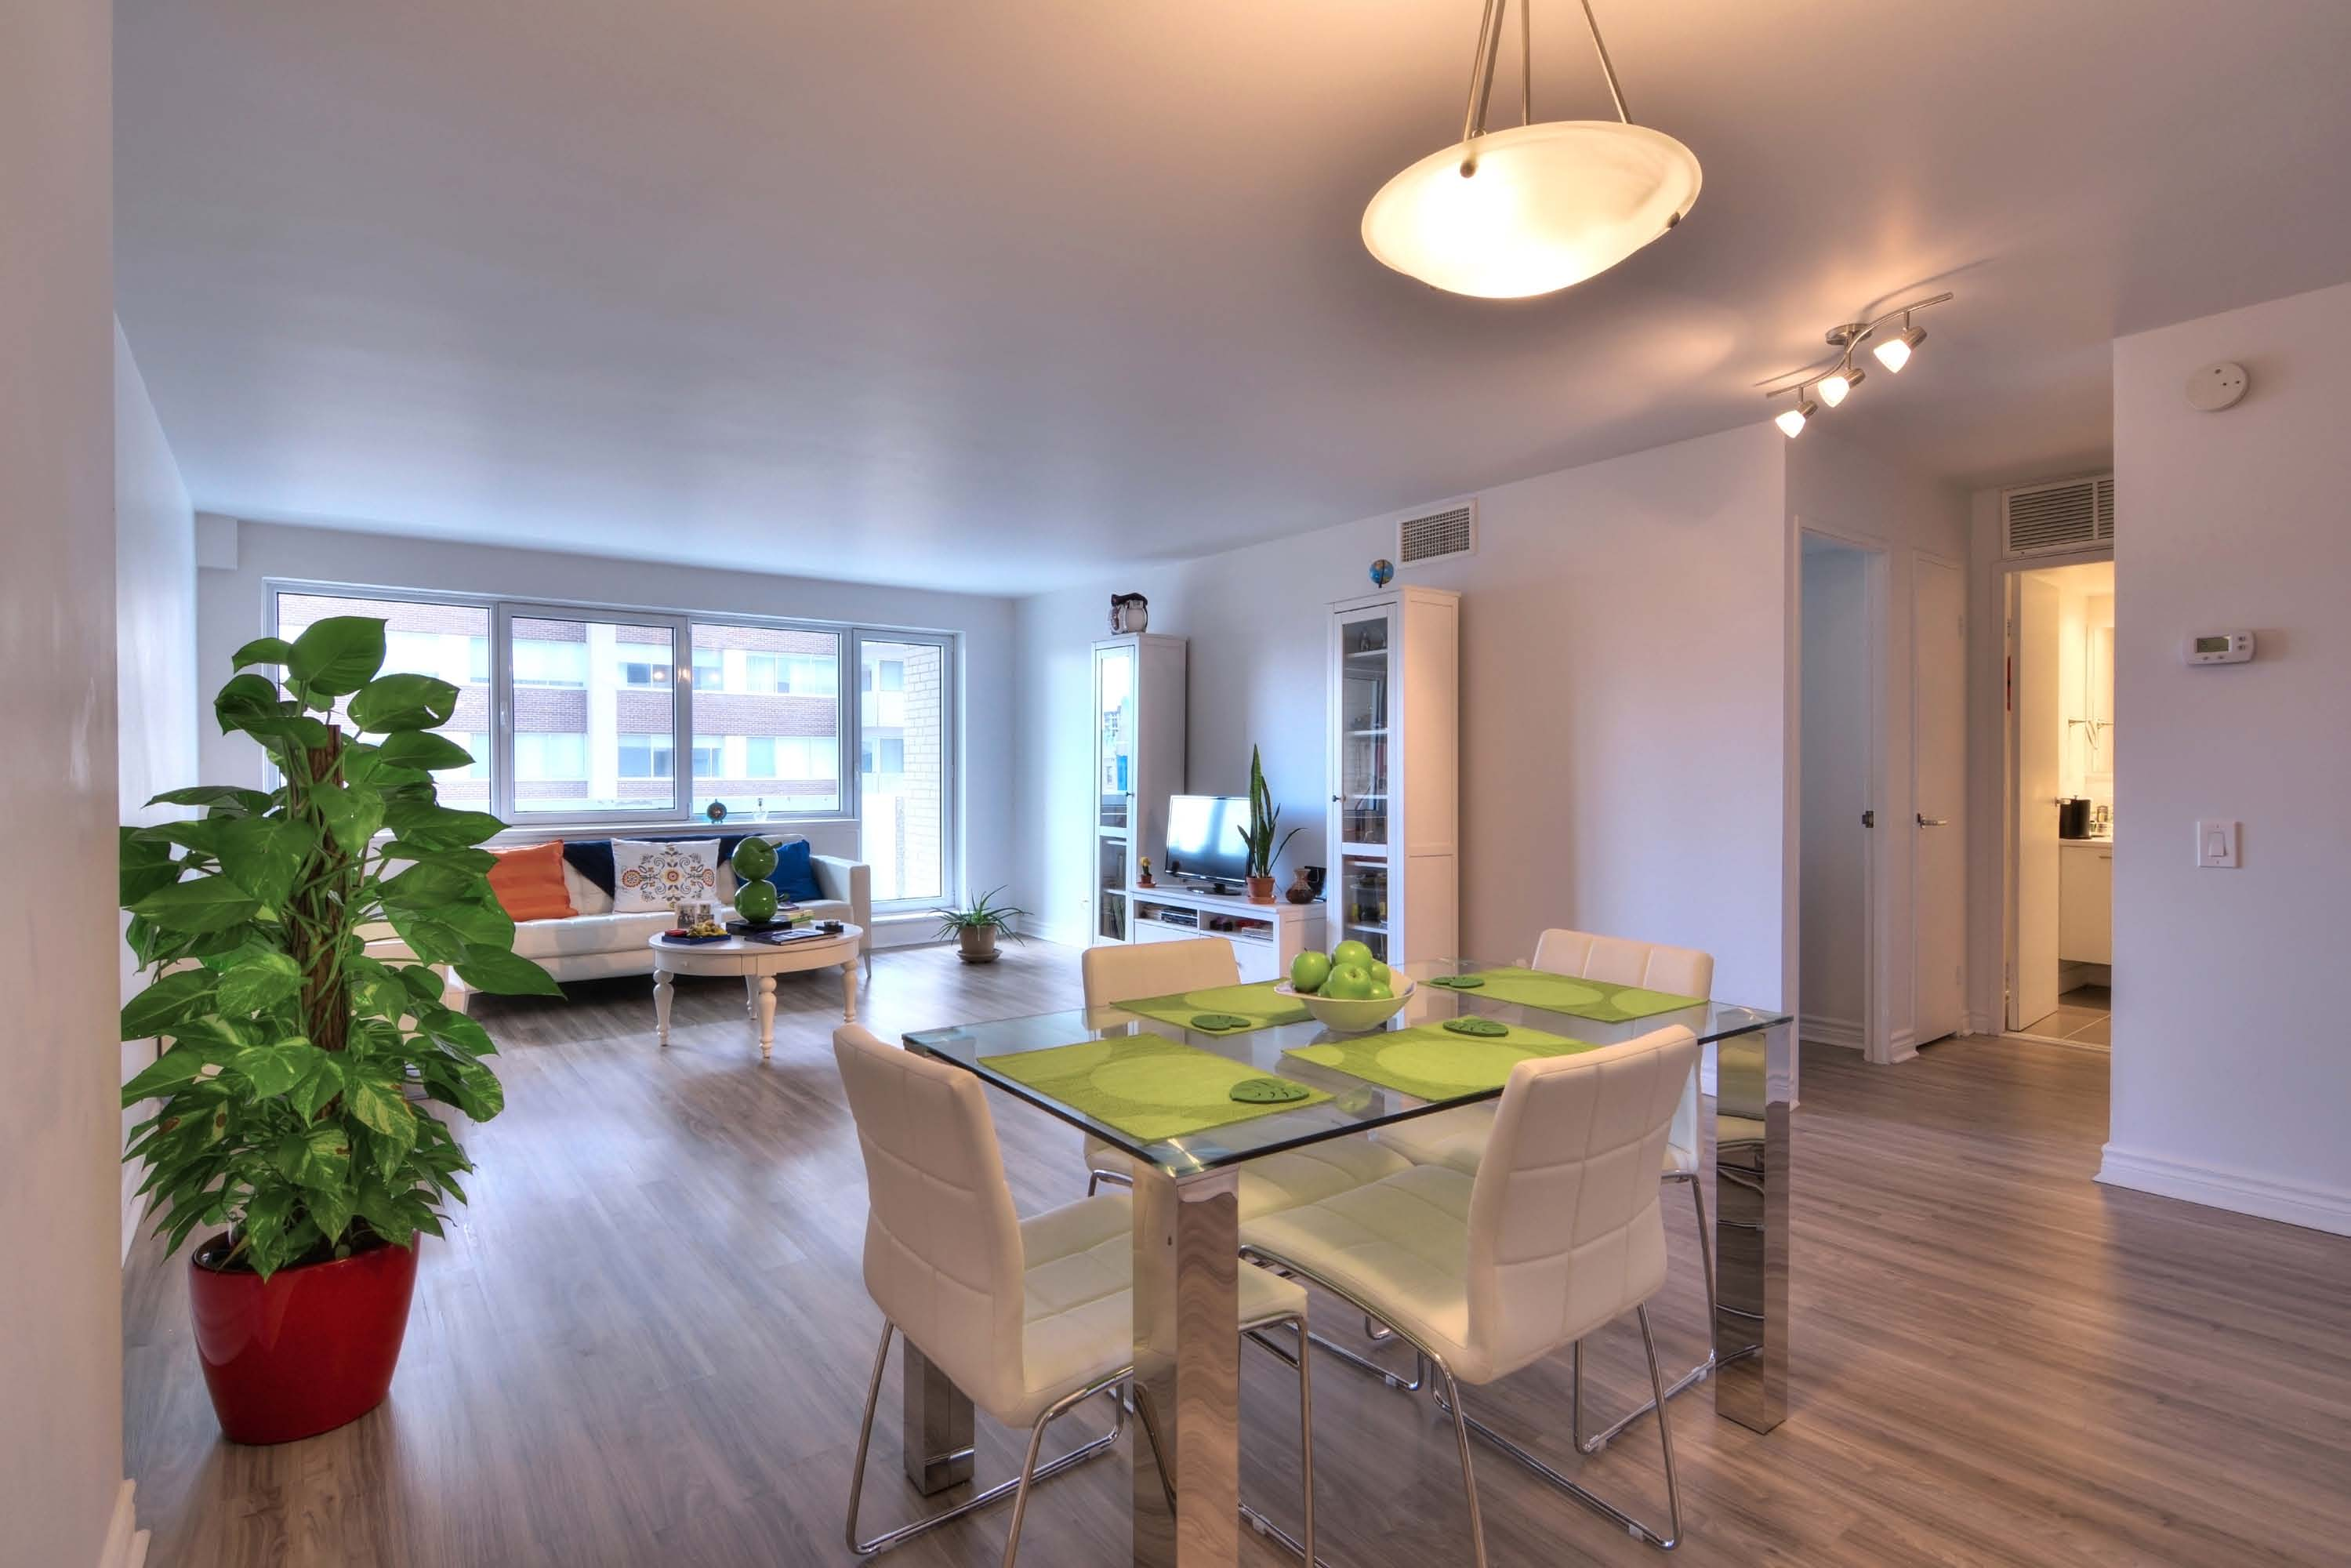 3450, Drummond street in Montréal, QC is Now Available